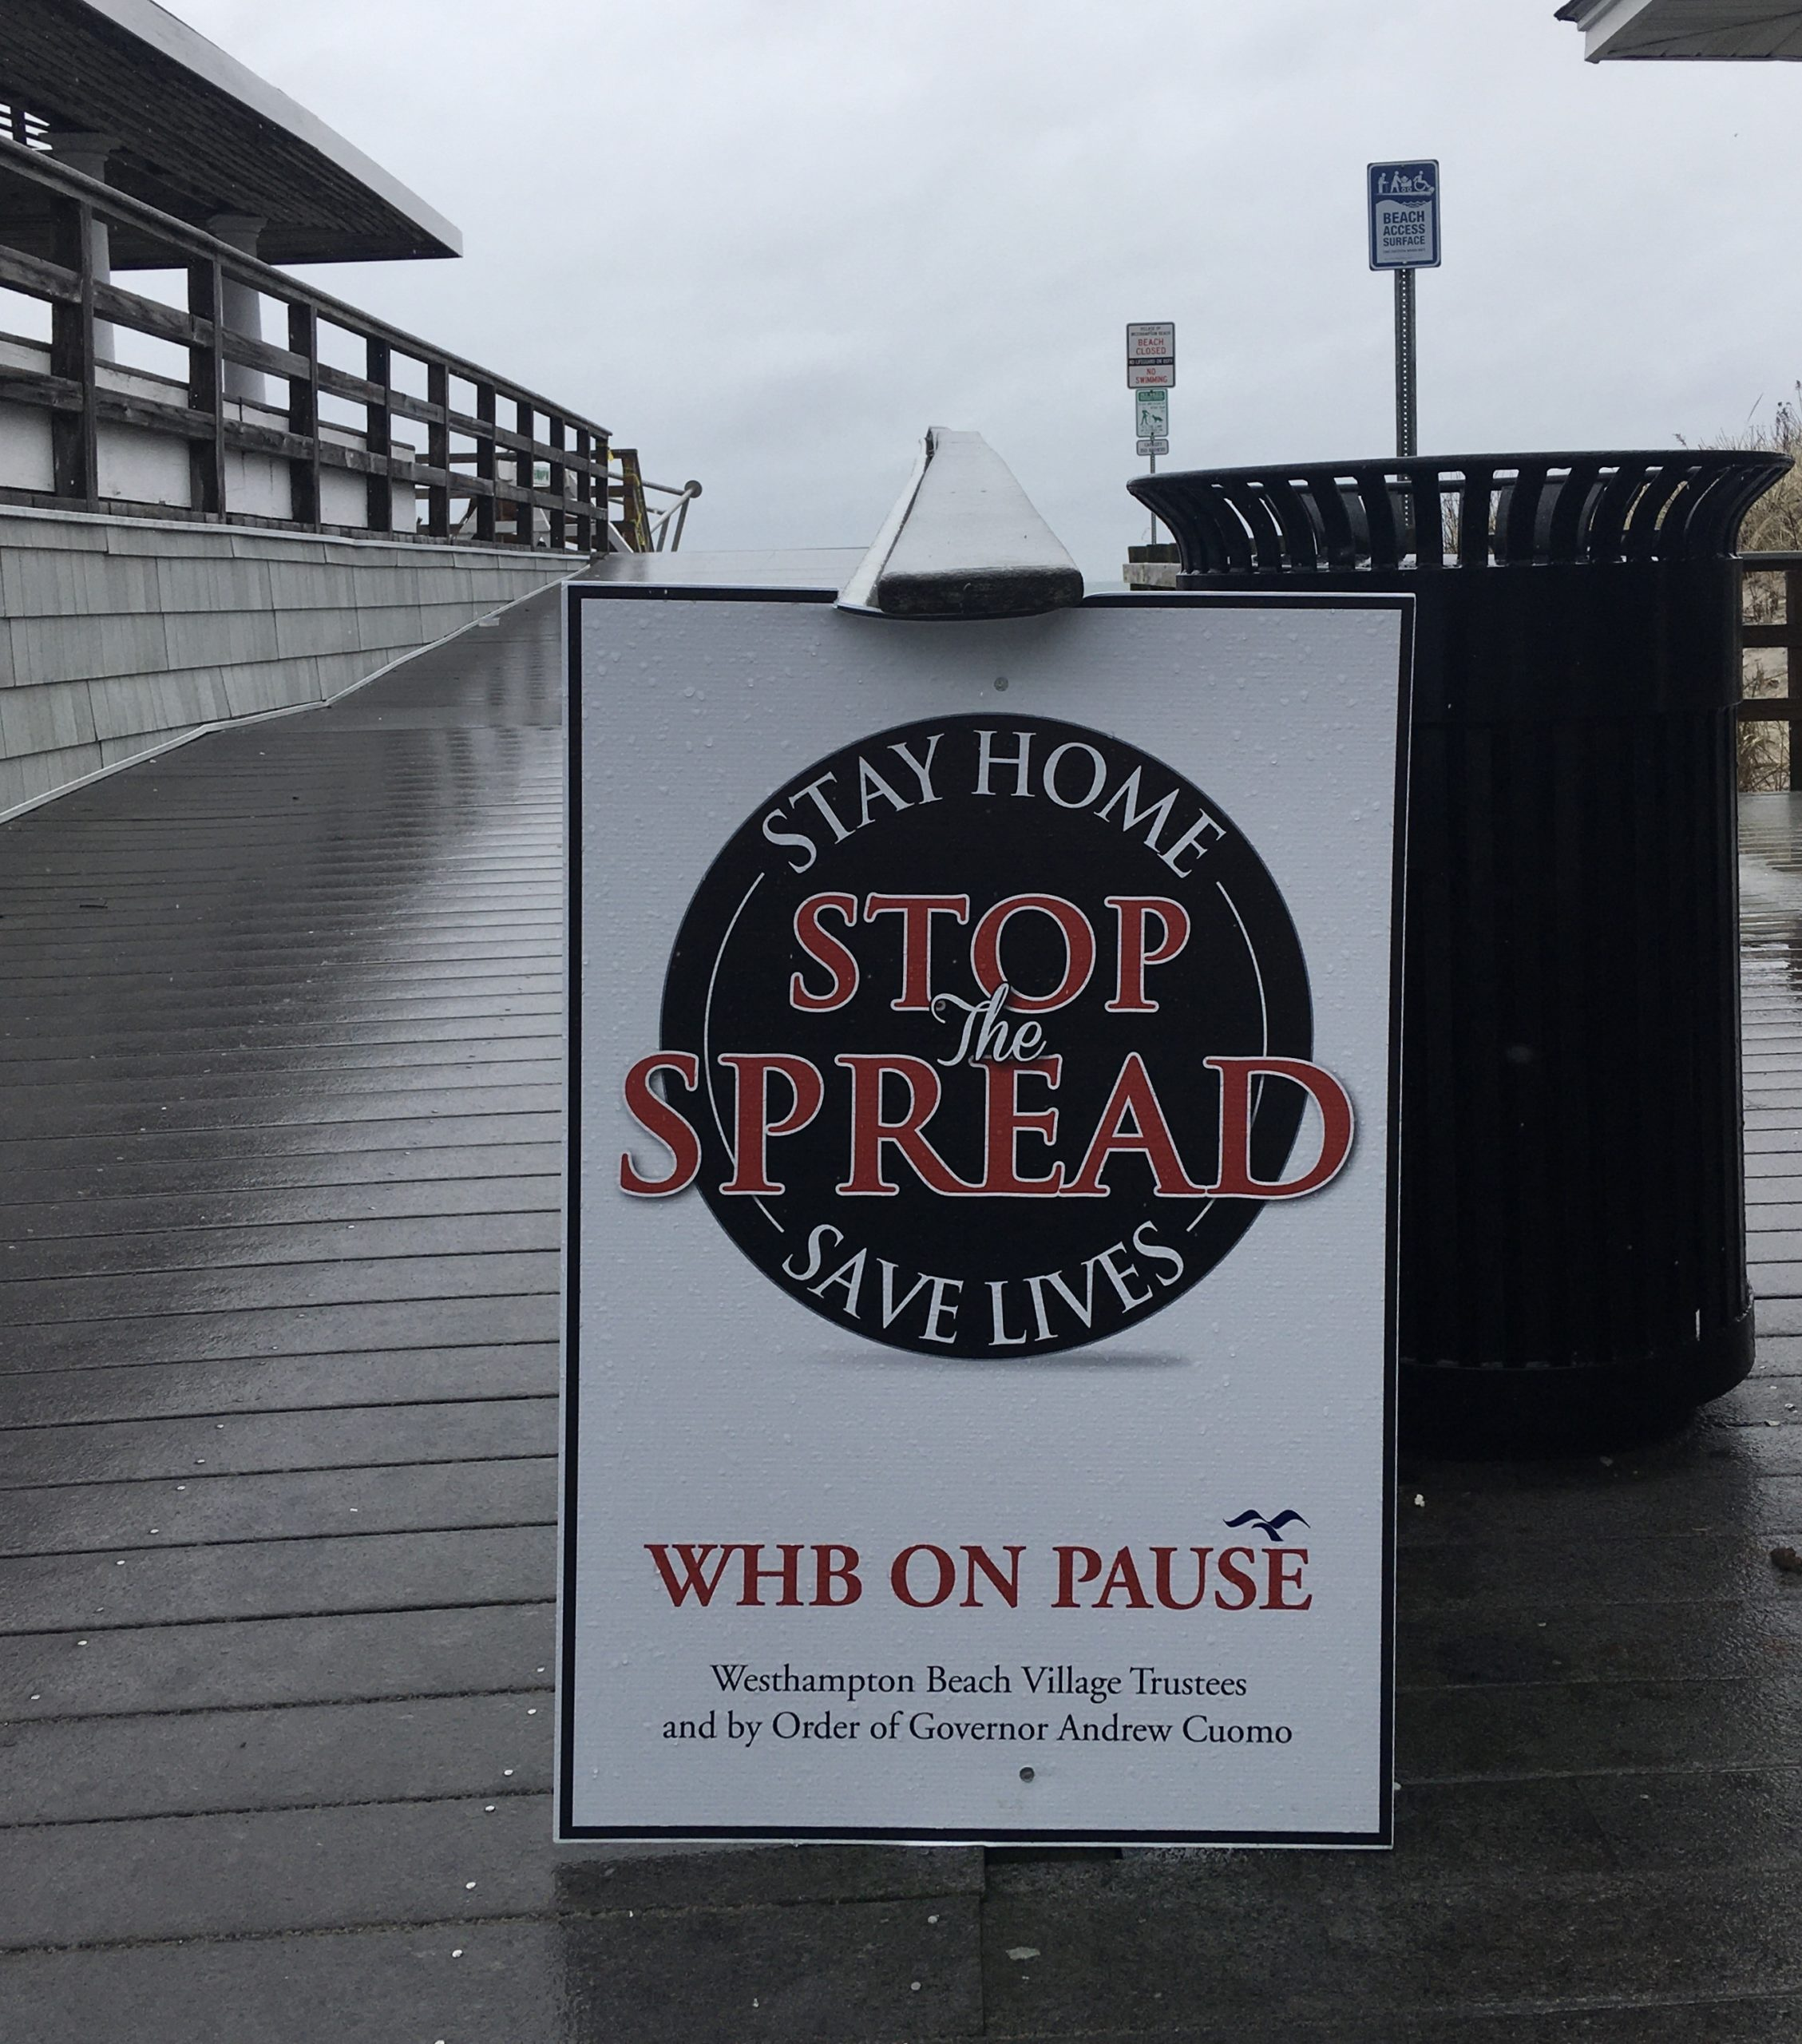 In the Village of Westhampton Beach, signs encourage visitors to the beaches and parks to comply with the New York PAUSE order.